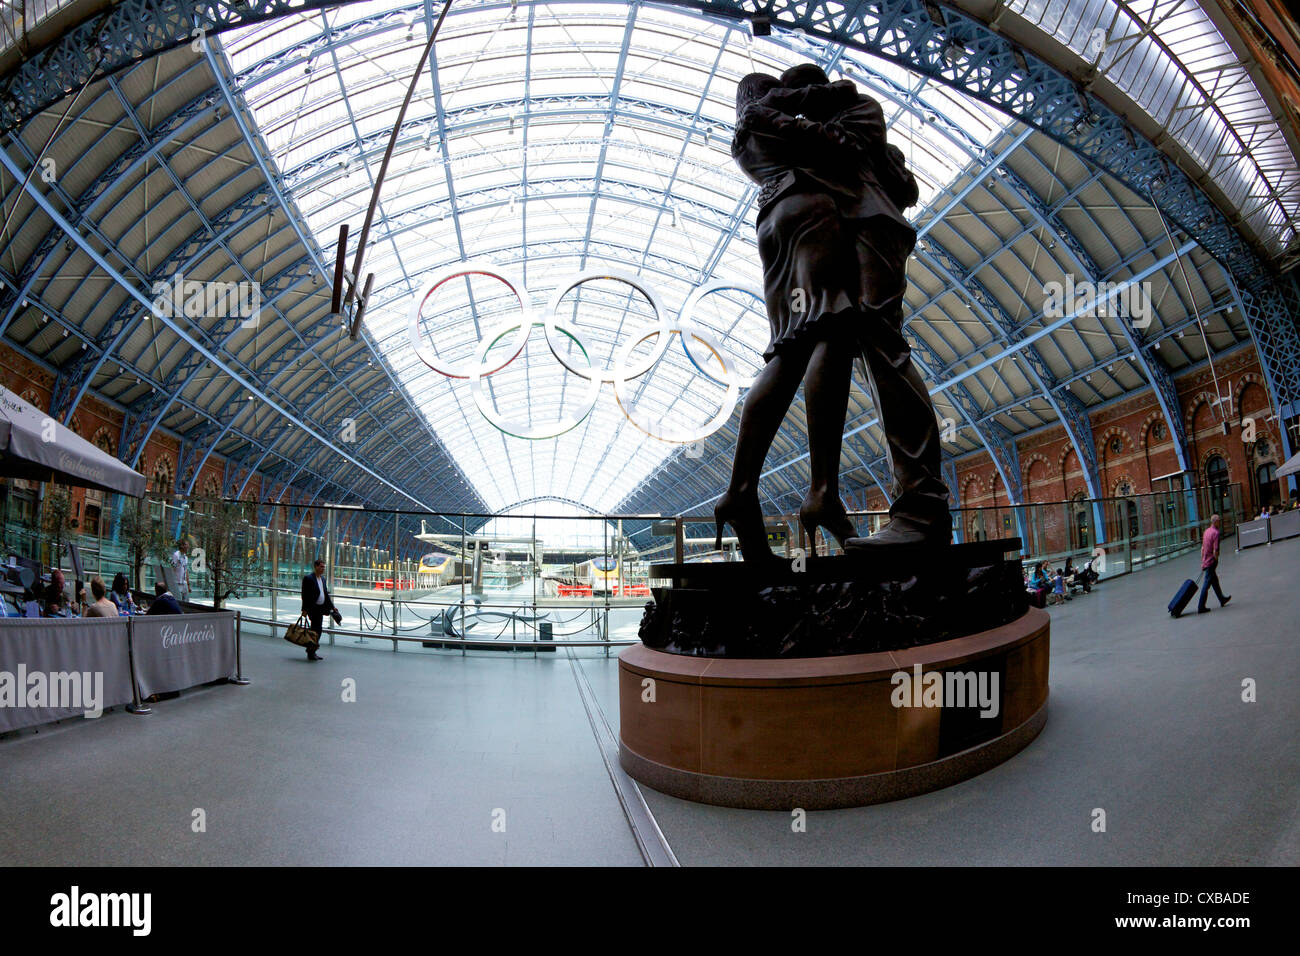 Statue the Meeting Place by Paul Day in the Eurostar terminal at St. Pancras Railway Station, London, Uited Kingdom - Stock Image